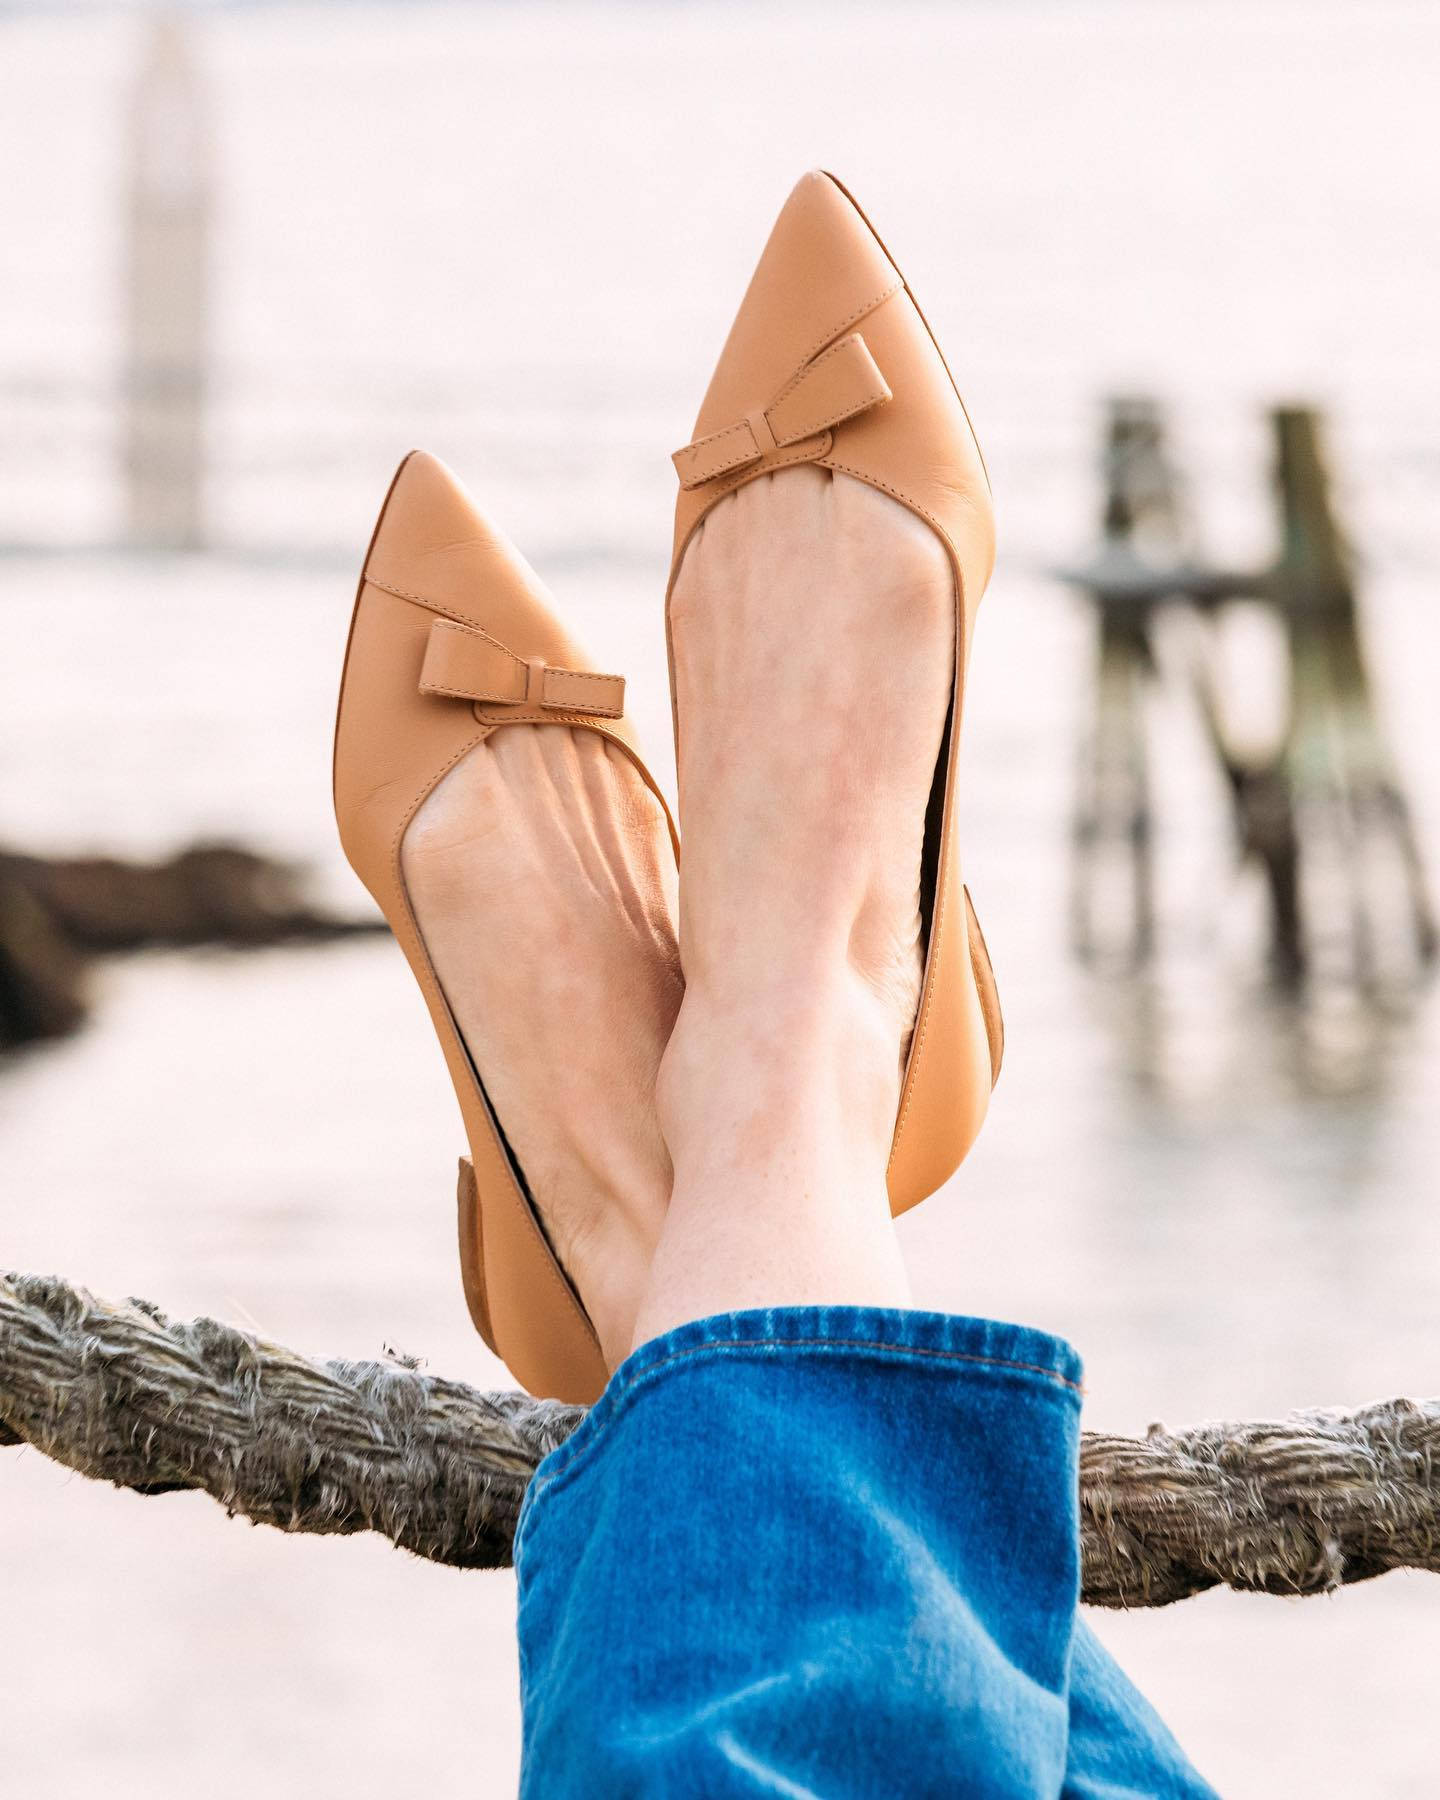 Sarah Flint's Italian-handcrafted Natalie flats provide luxurious comfort with a stylish asymmetrical bow and about 0.4-inch heels